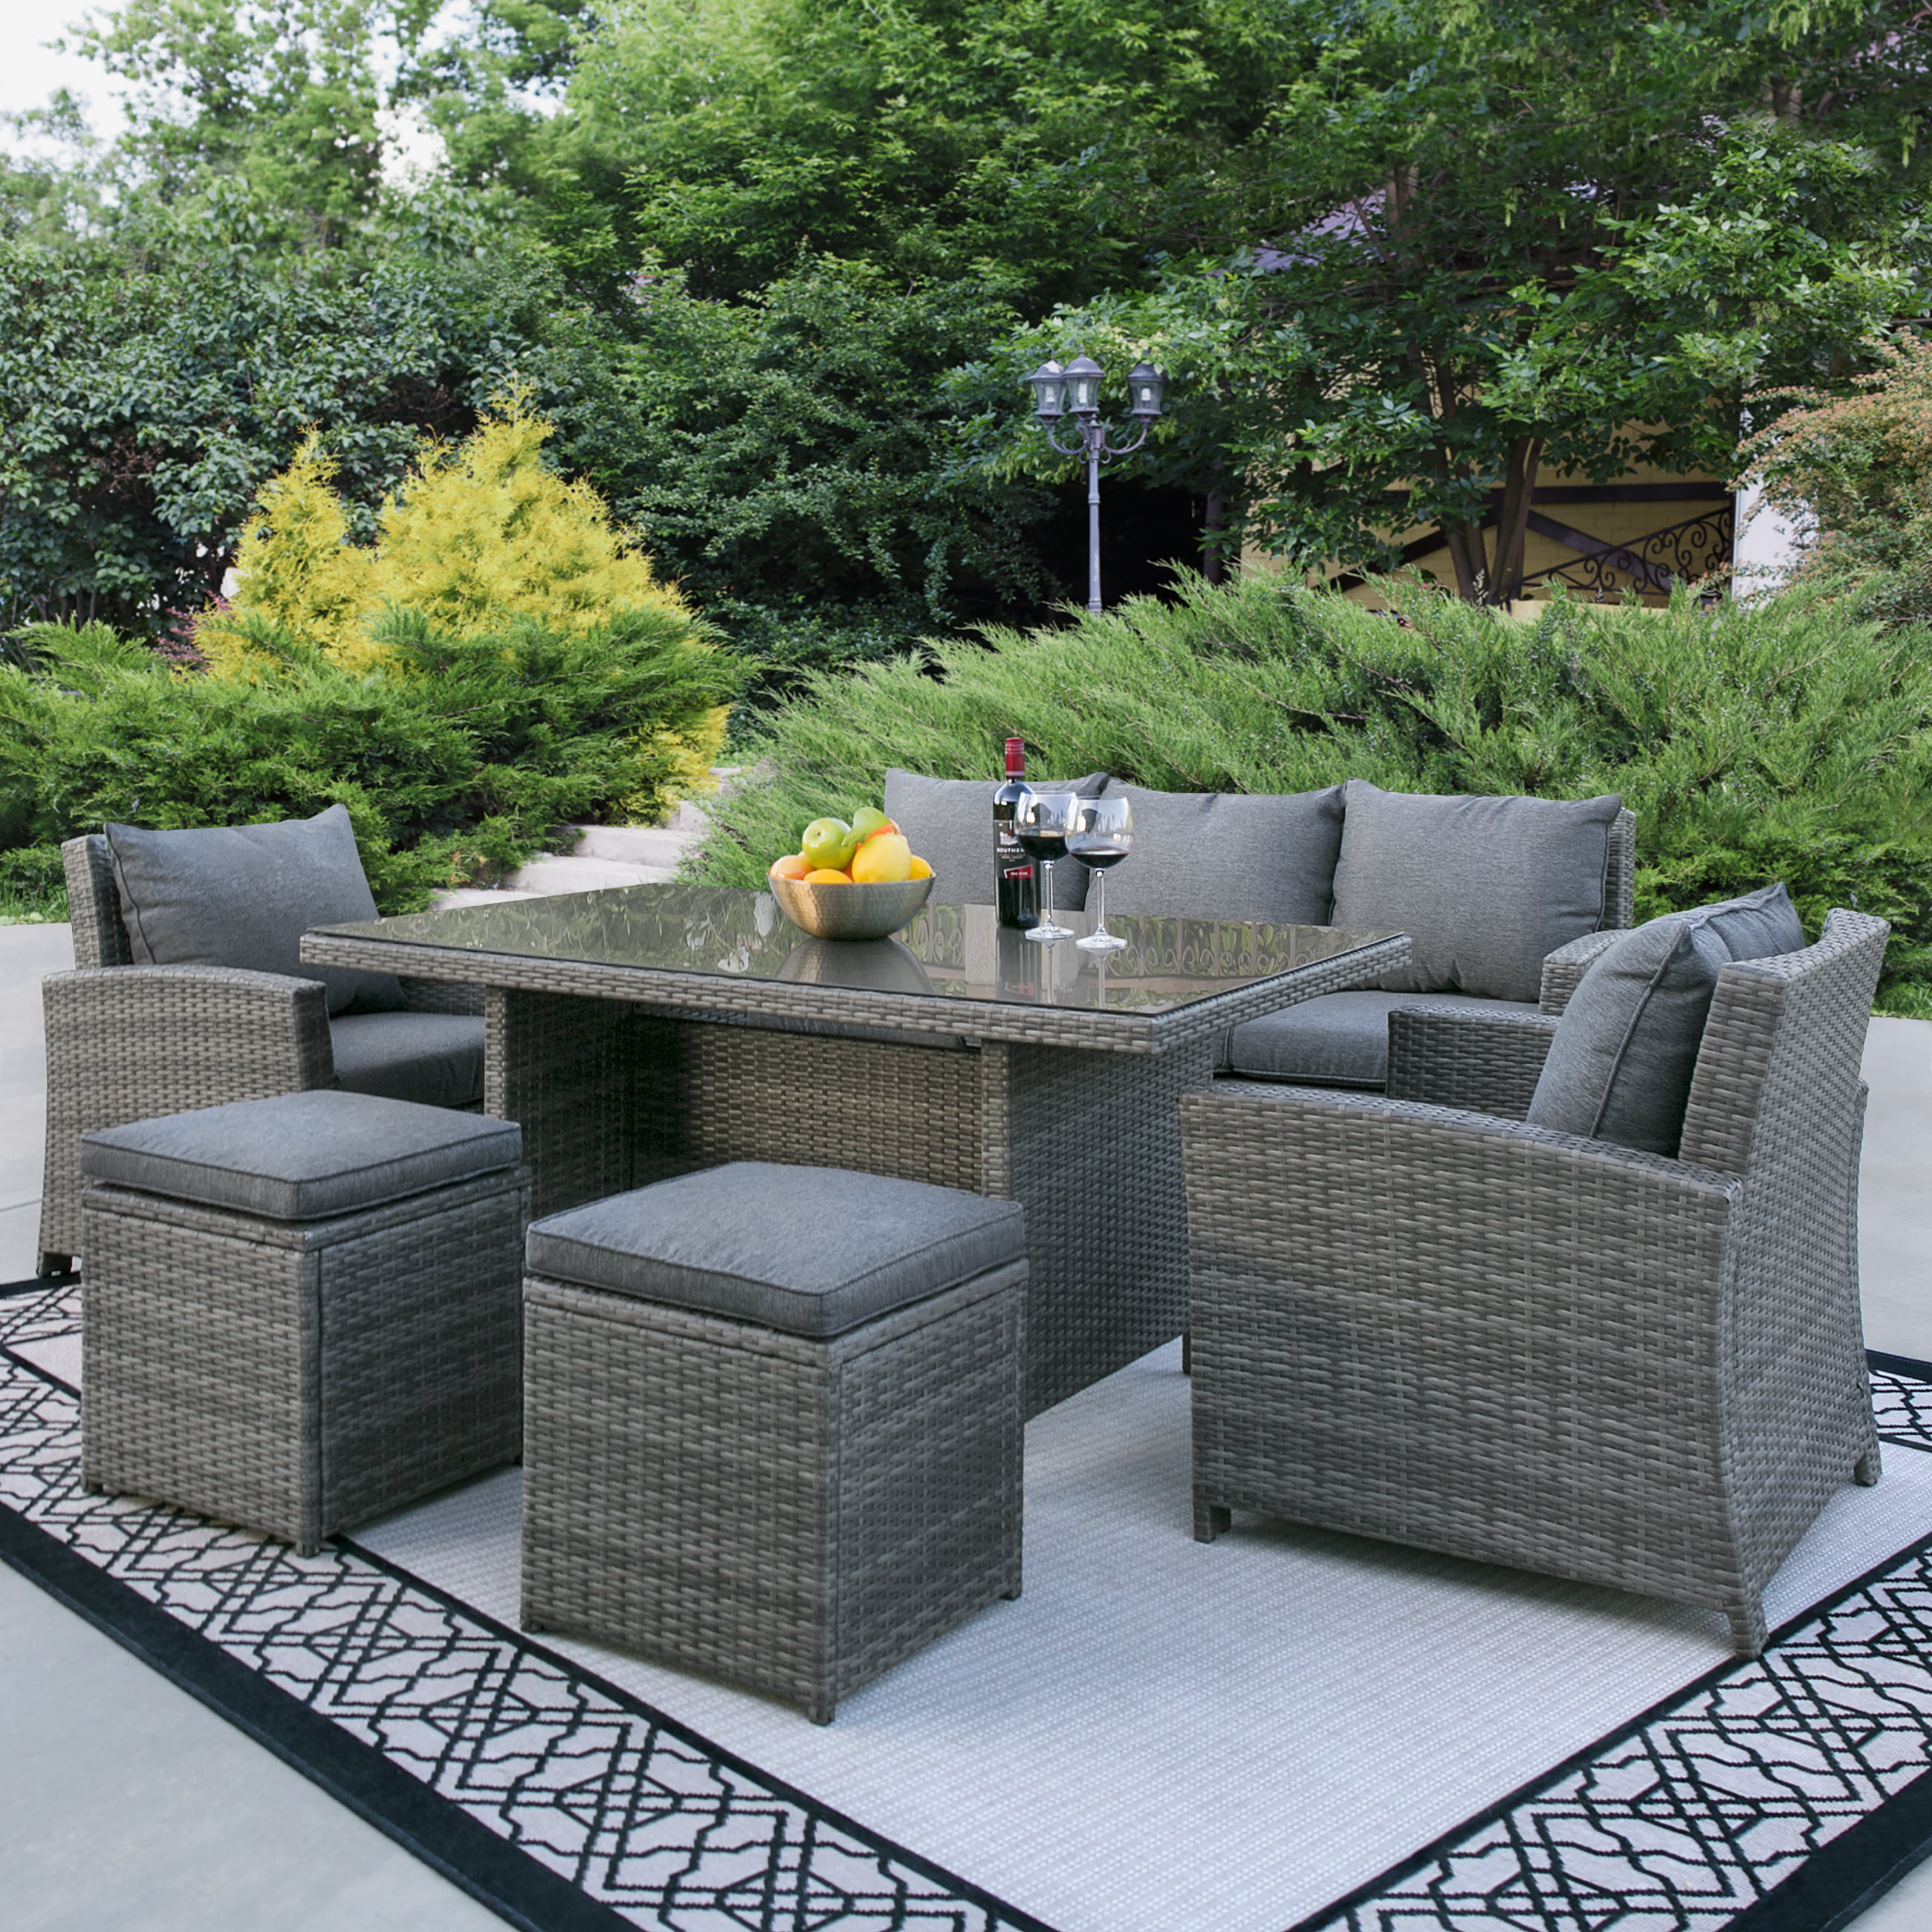 Best Choice Products Complete Outdoor Living Patio Furniture 6-Piece Wicker Dining Sofa Set- Grey by